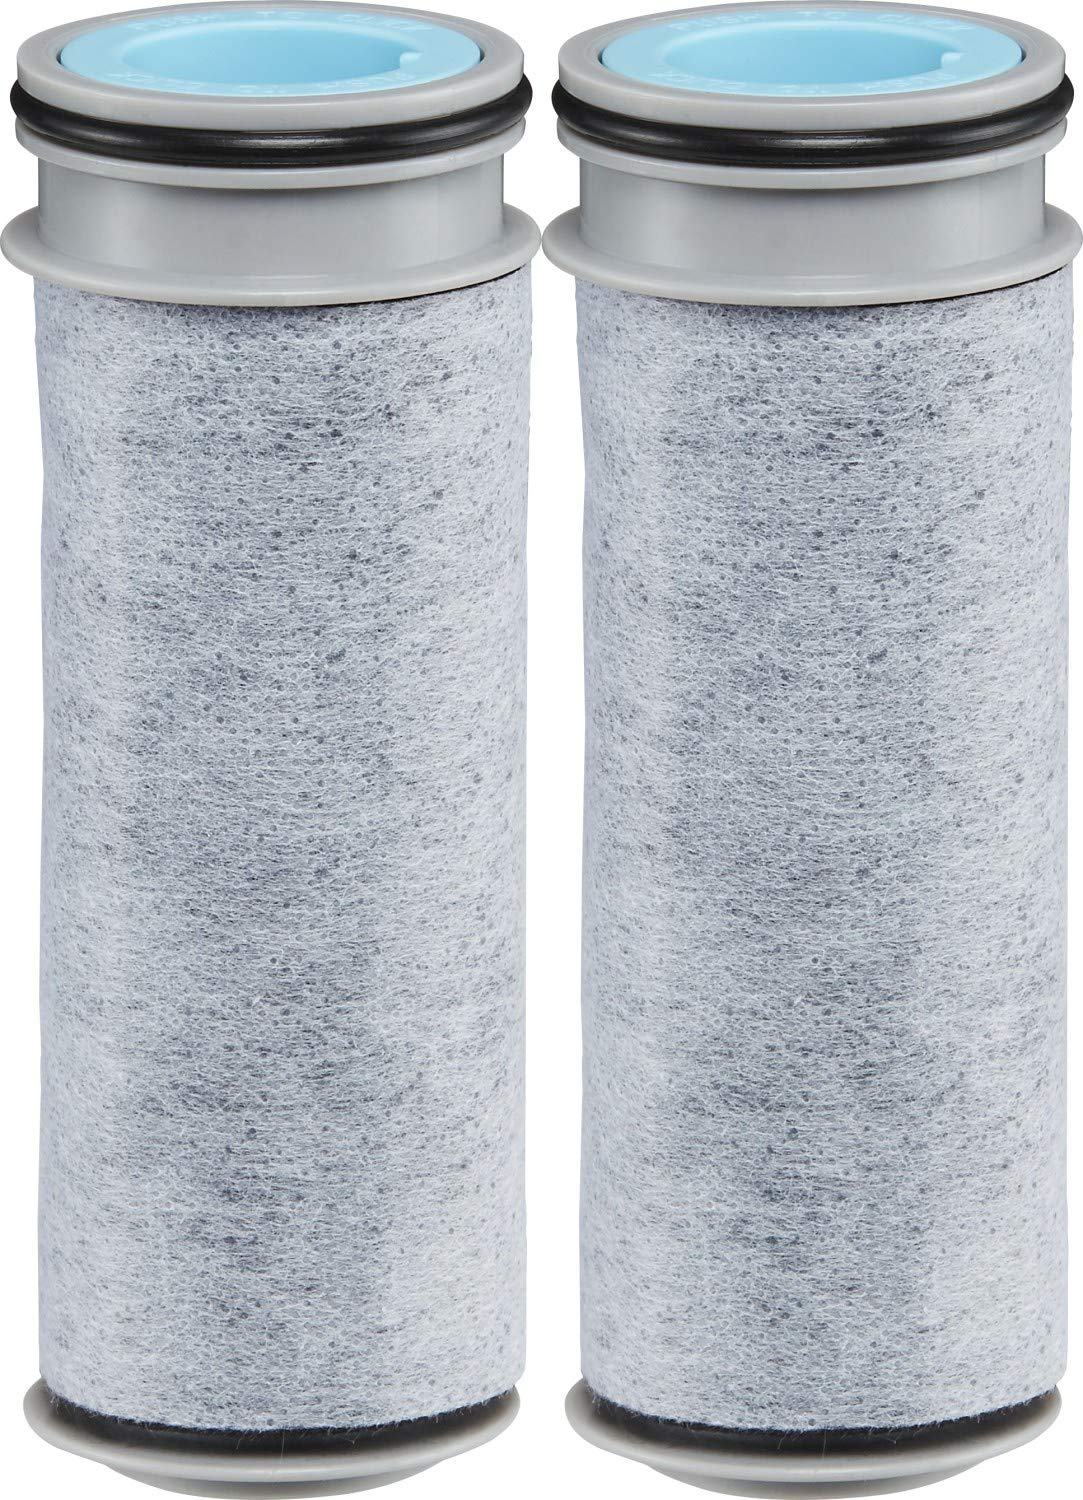 Brita Stream Pitcher and Dispenser Replacement Water Filters, 2 Count, Gray